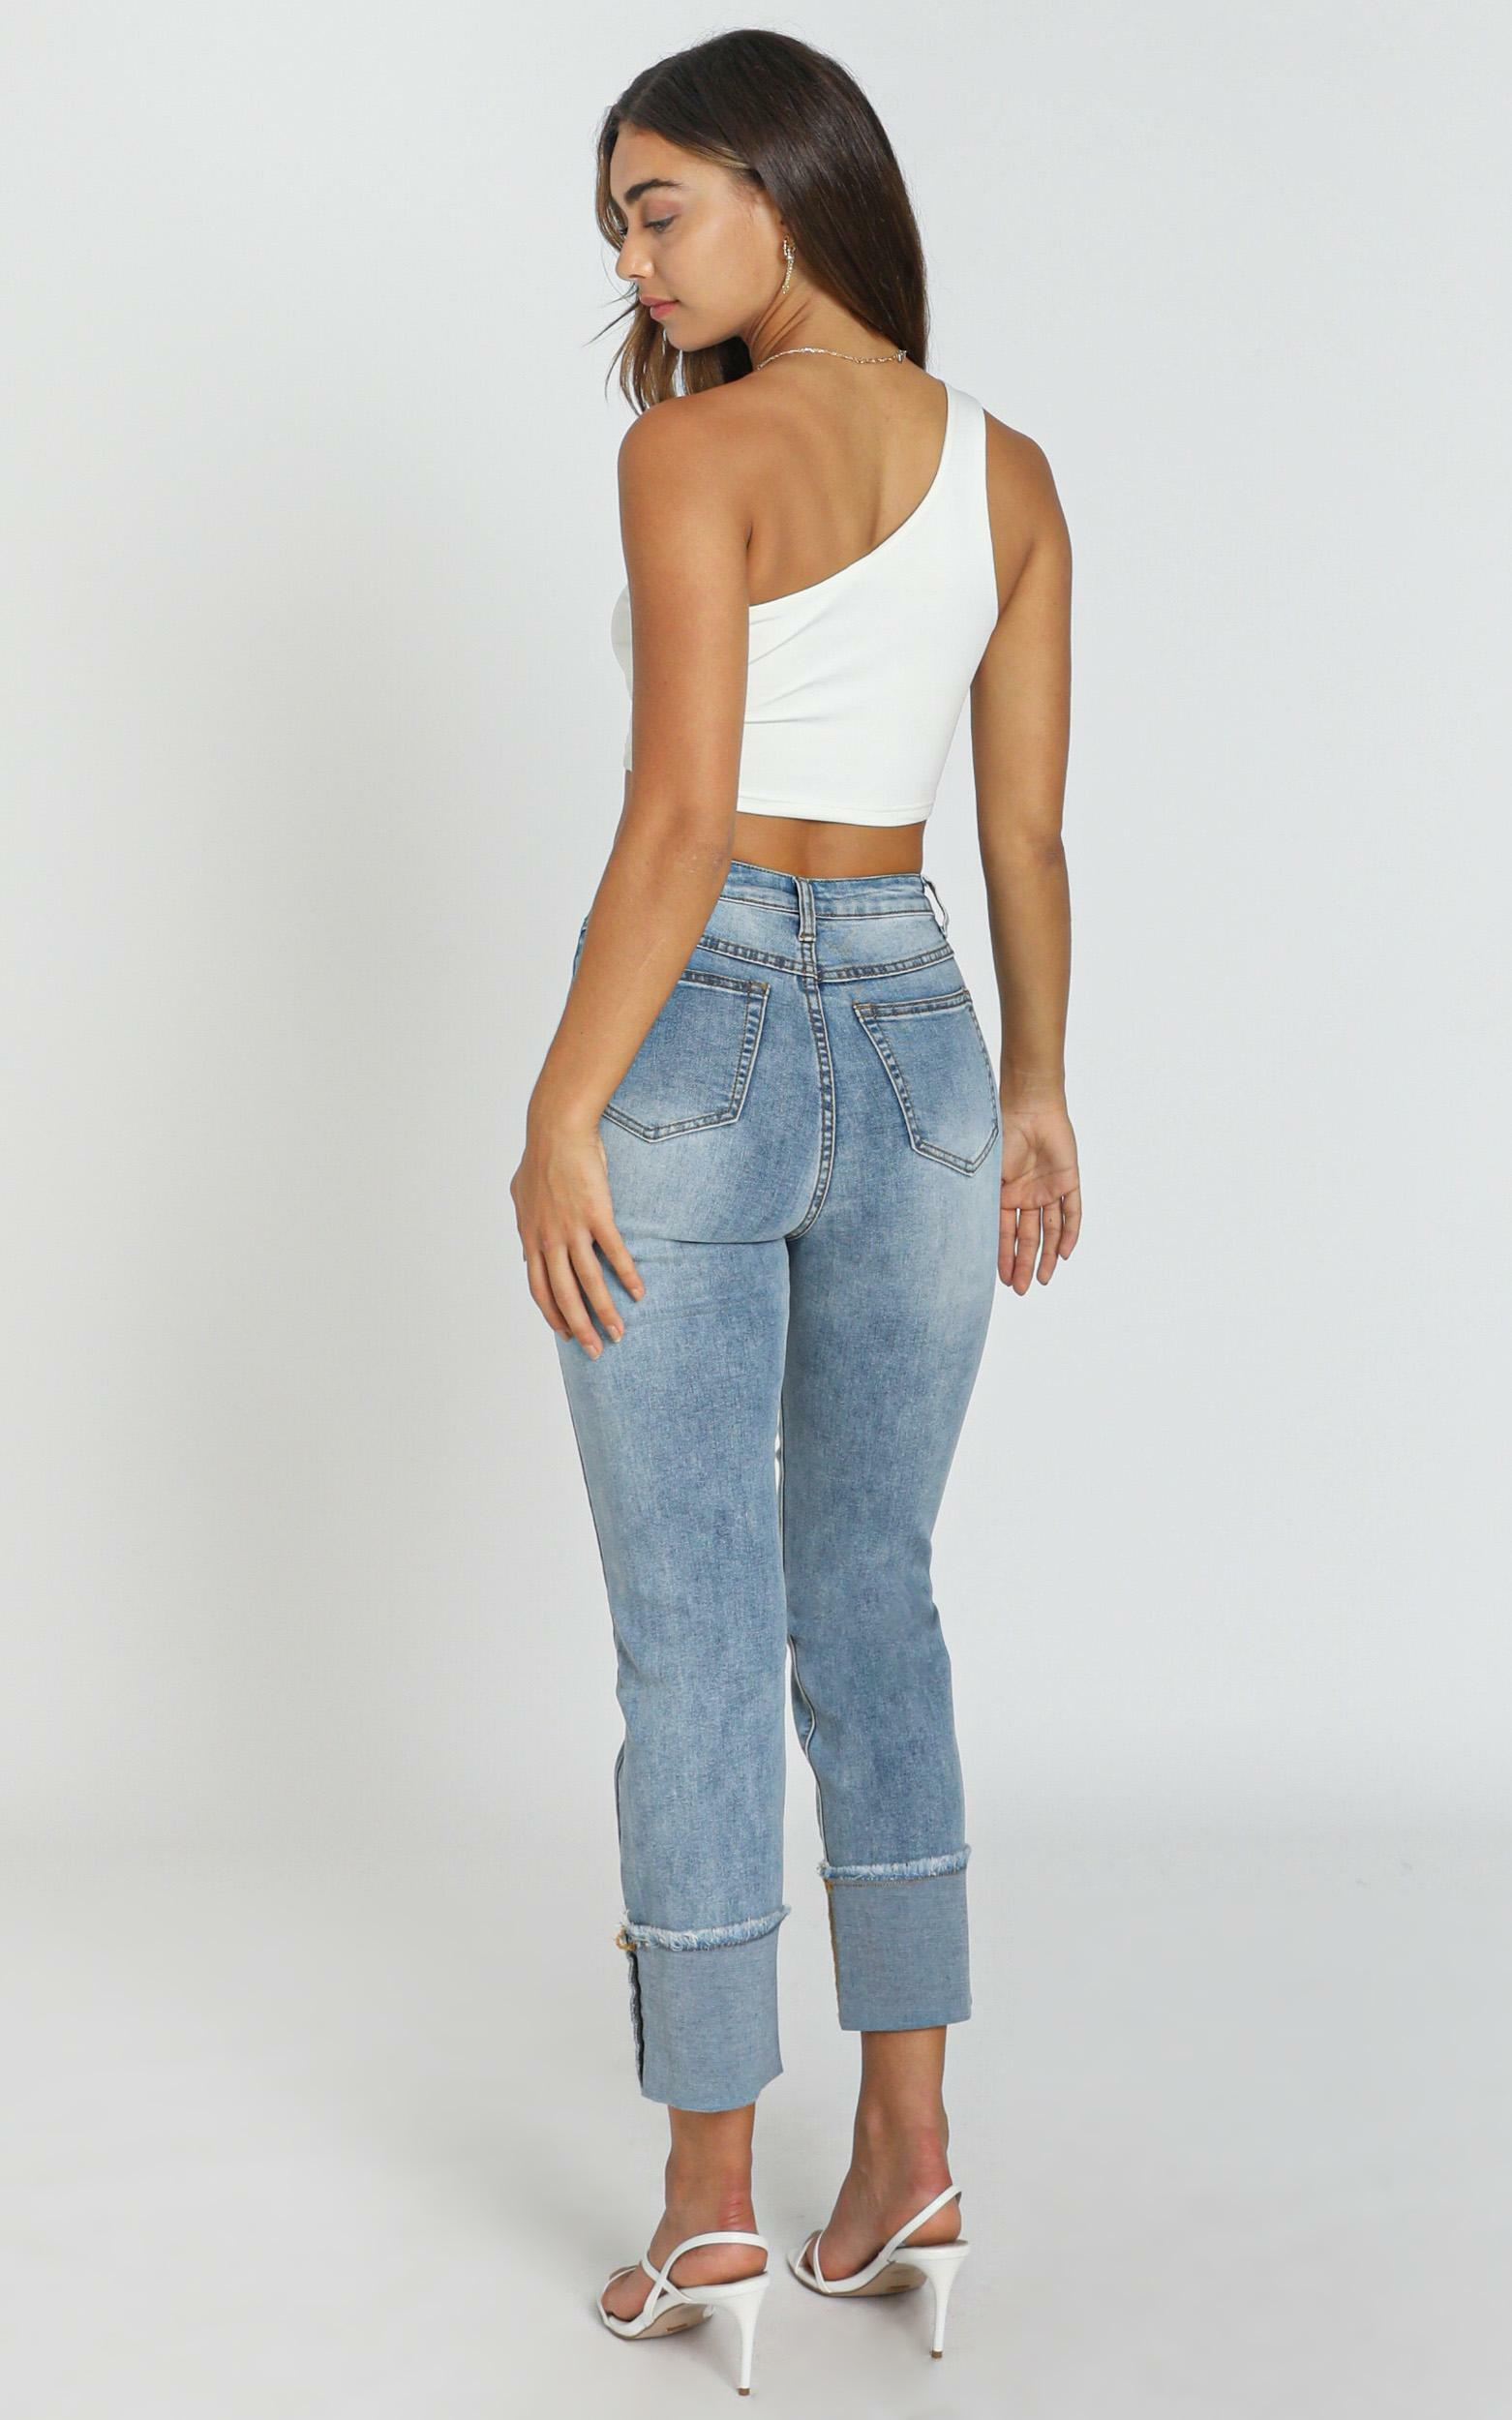 Eva Jeans In mid blue wash denim - 20 (XXXXL), Blue, hi-res image number null